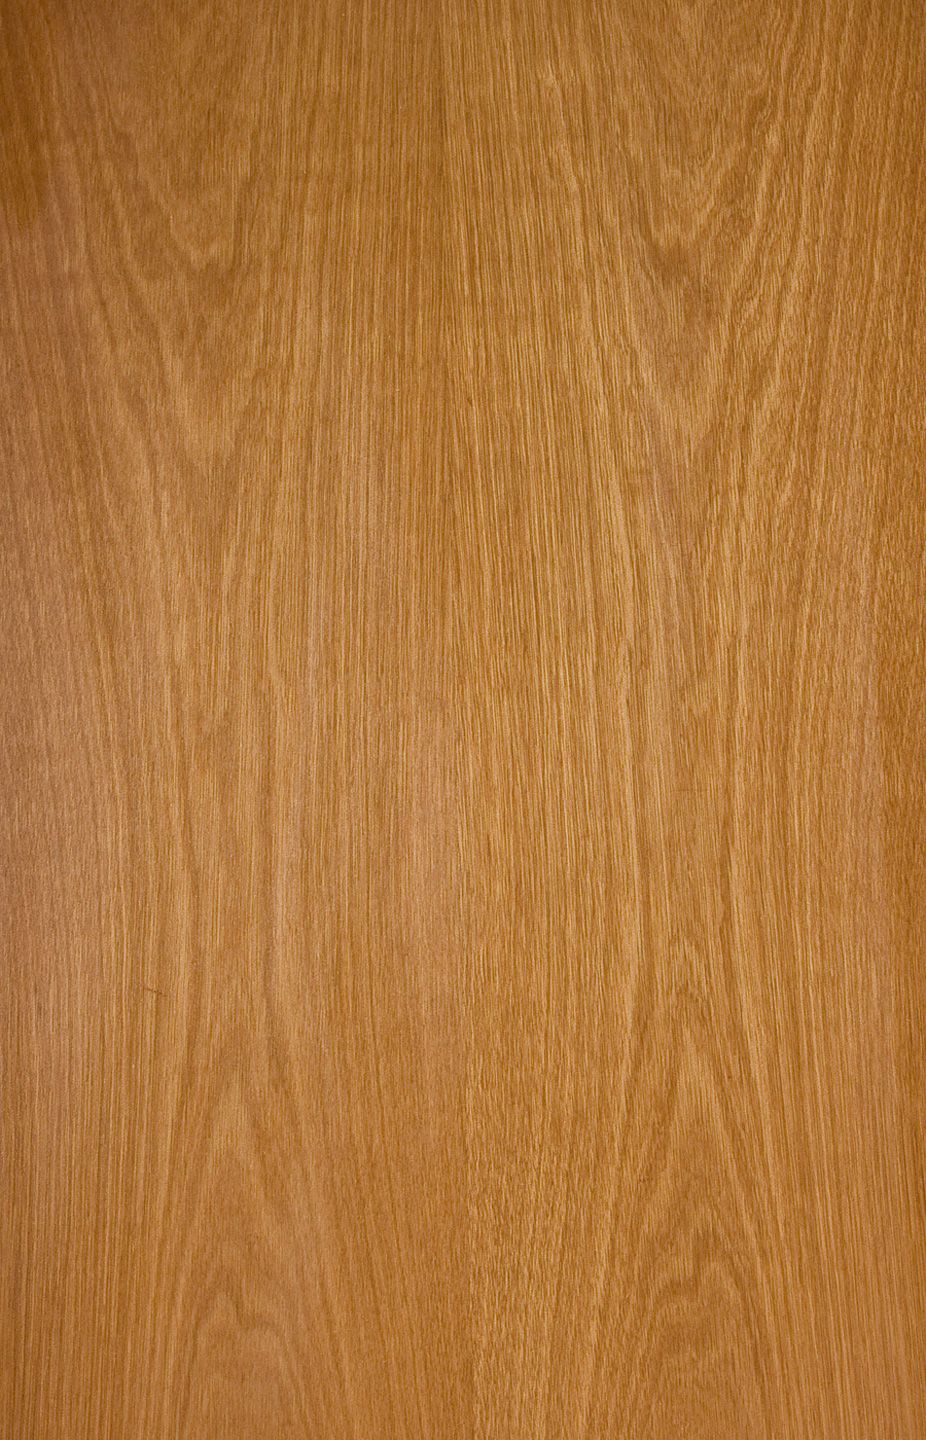 Indian Cherry Flowery Veneer Texture Oak Wood Texture Wood Veneer